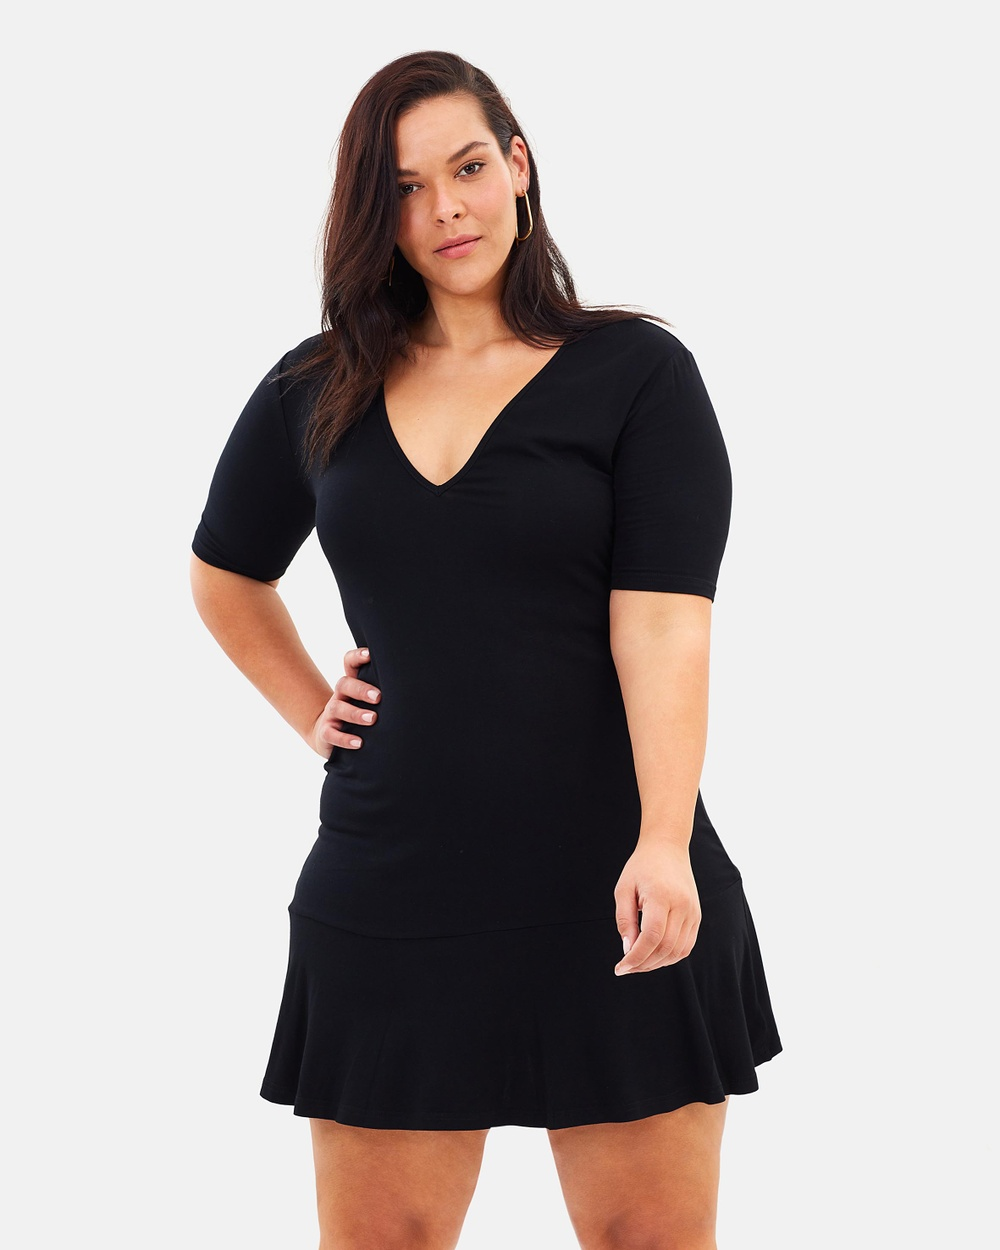 Atmos & Here Curvy ICONIC EXCLUSIVE Essential Drop Waist Dress Dresses Black ICONIC EXCLUSIVE Essential Drop Waist Dress